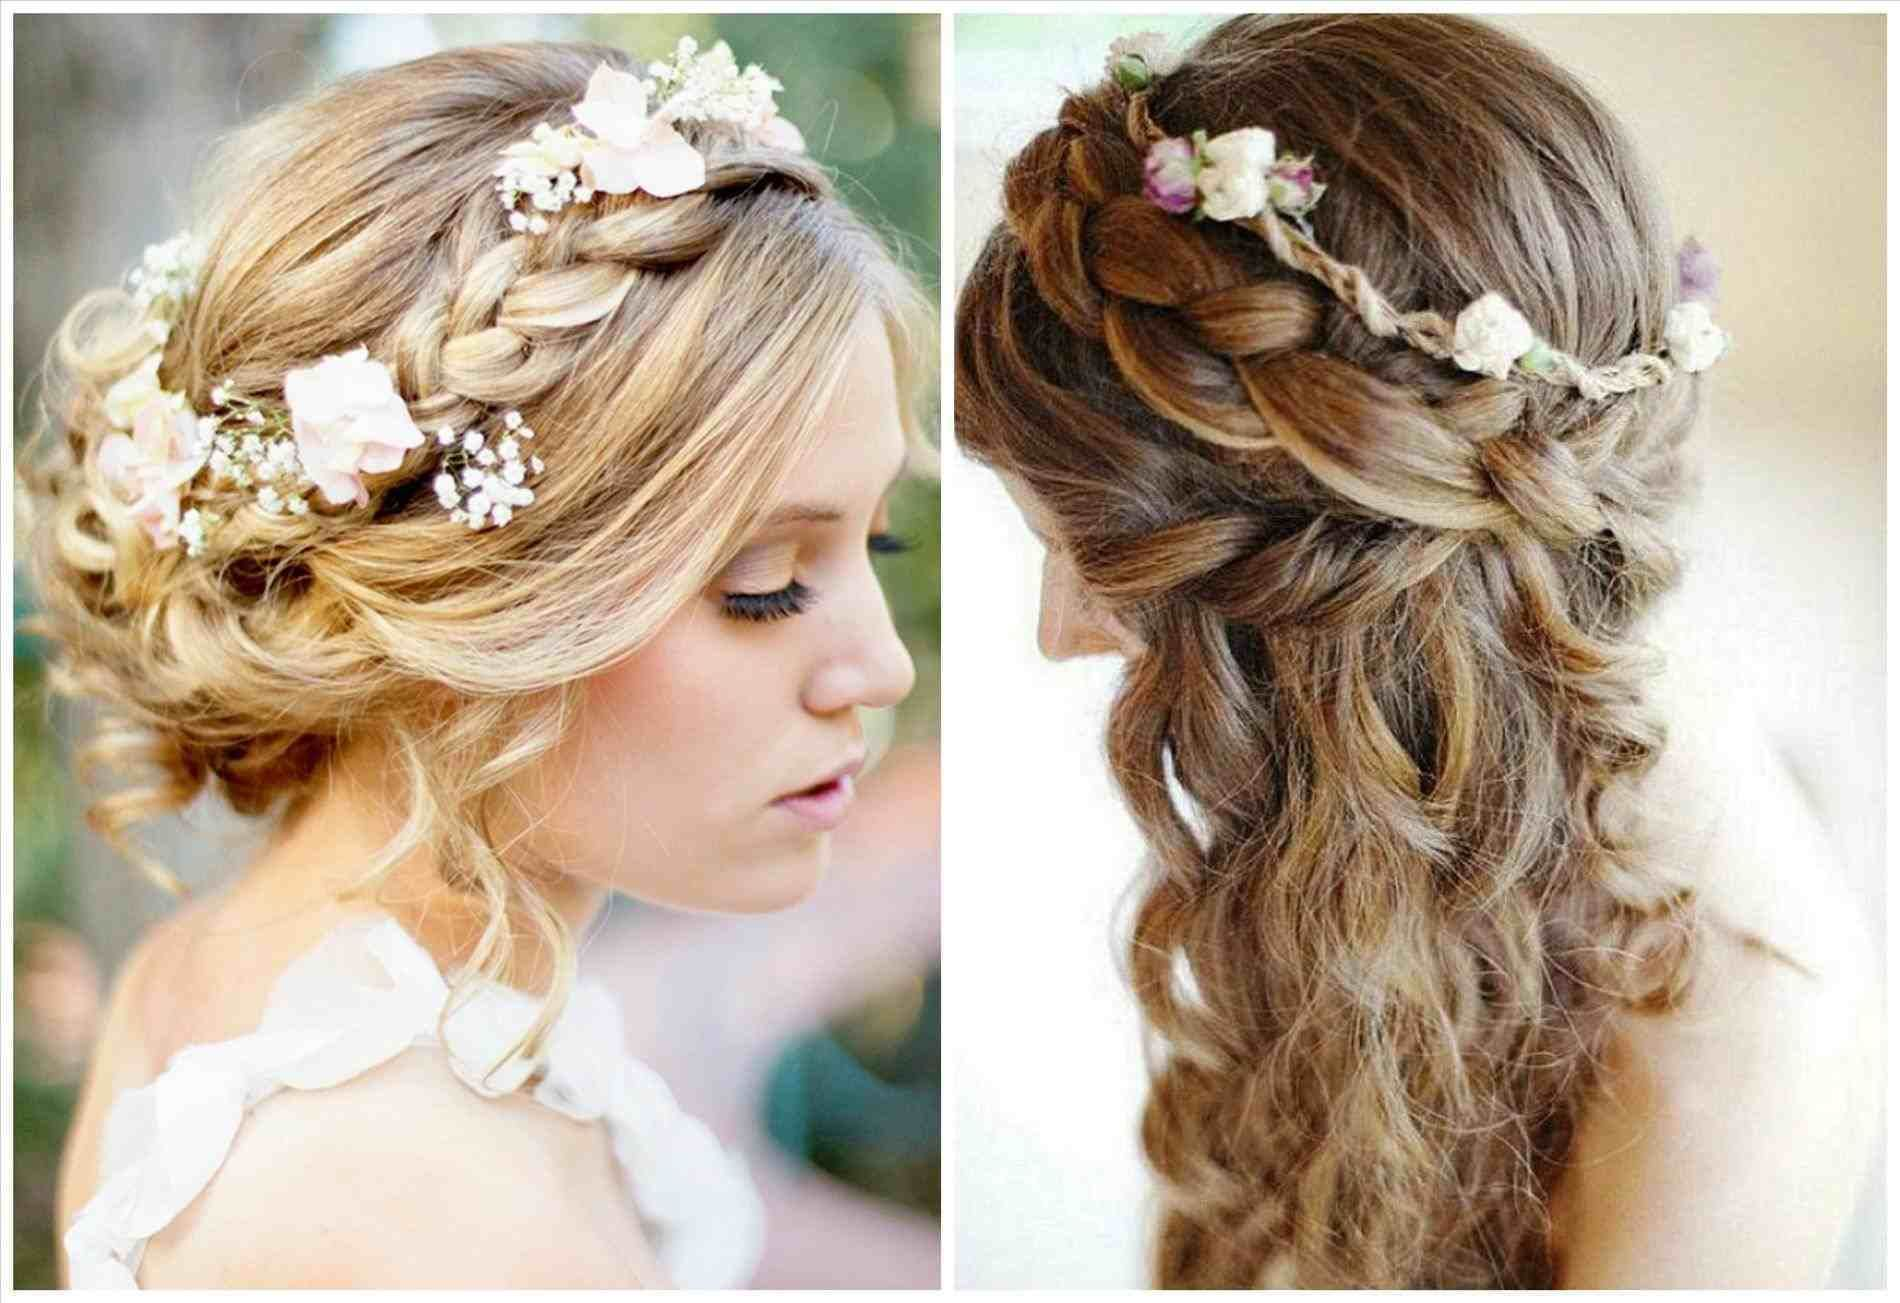 Beautiful Looks Beautiful Hairstyles With Flowers For Entourage Parties Of All Ages Flower Beautiful Elegant Wedding H Hair Styles Lavender Hair Beautiful Hair